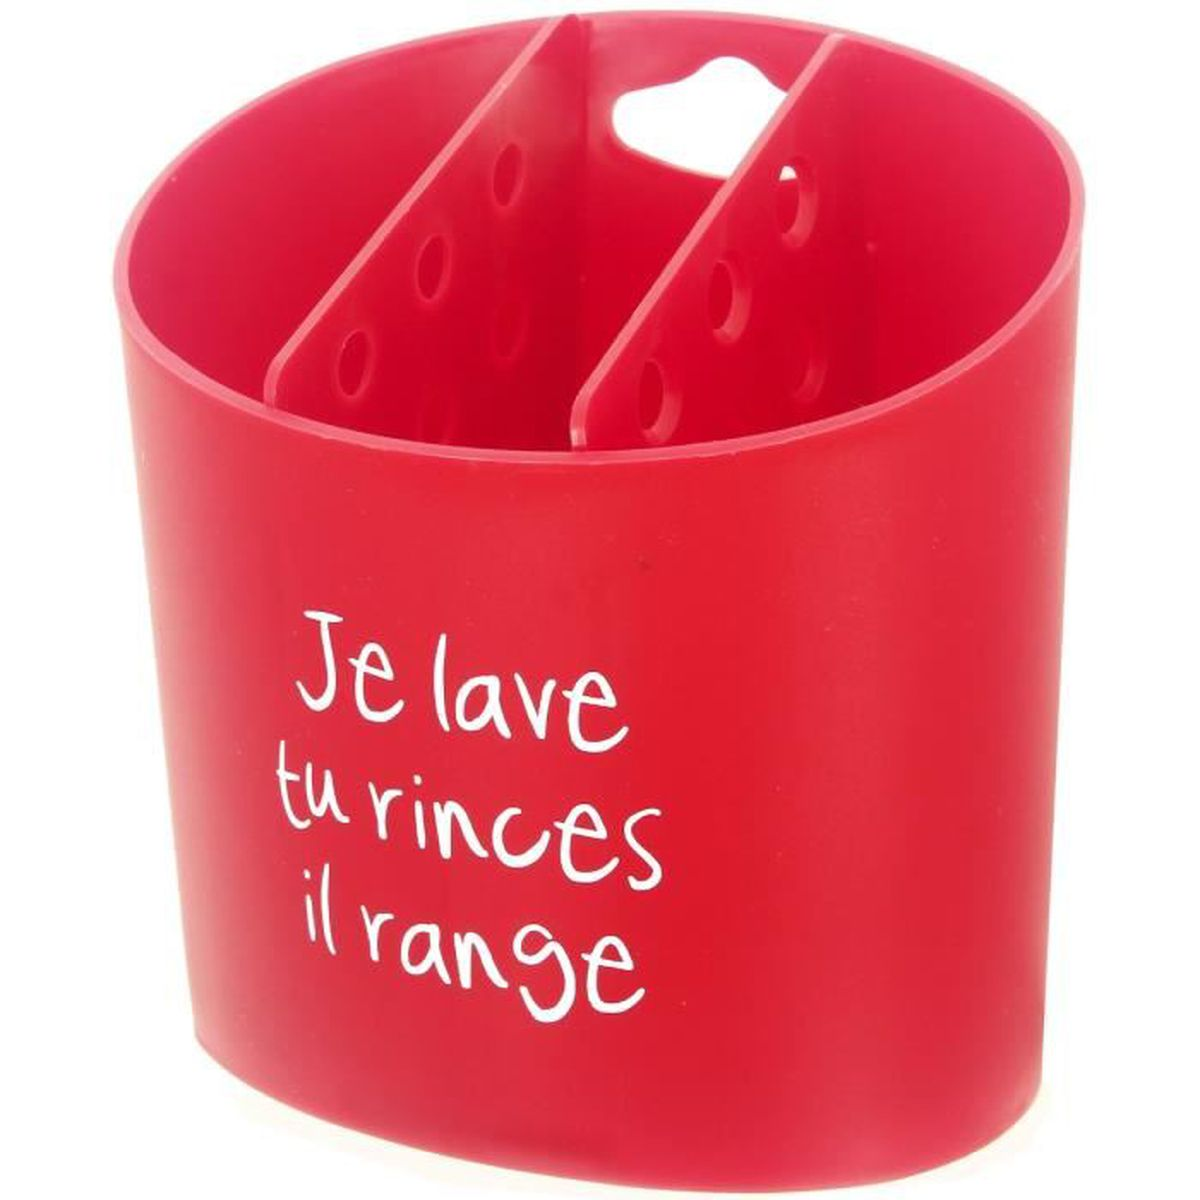 RANGE COUVERTS Range Couverts à Suspendre Design Humour 3 Compart